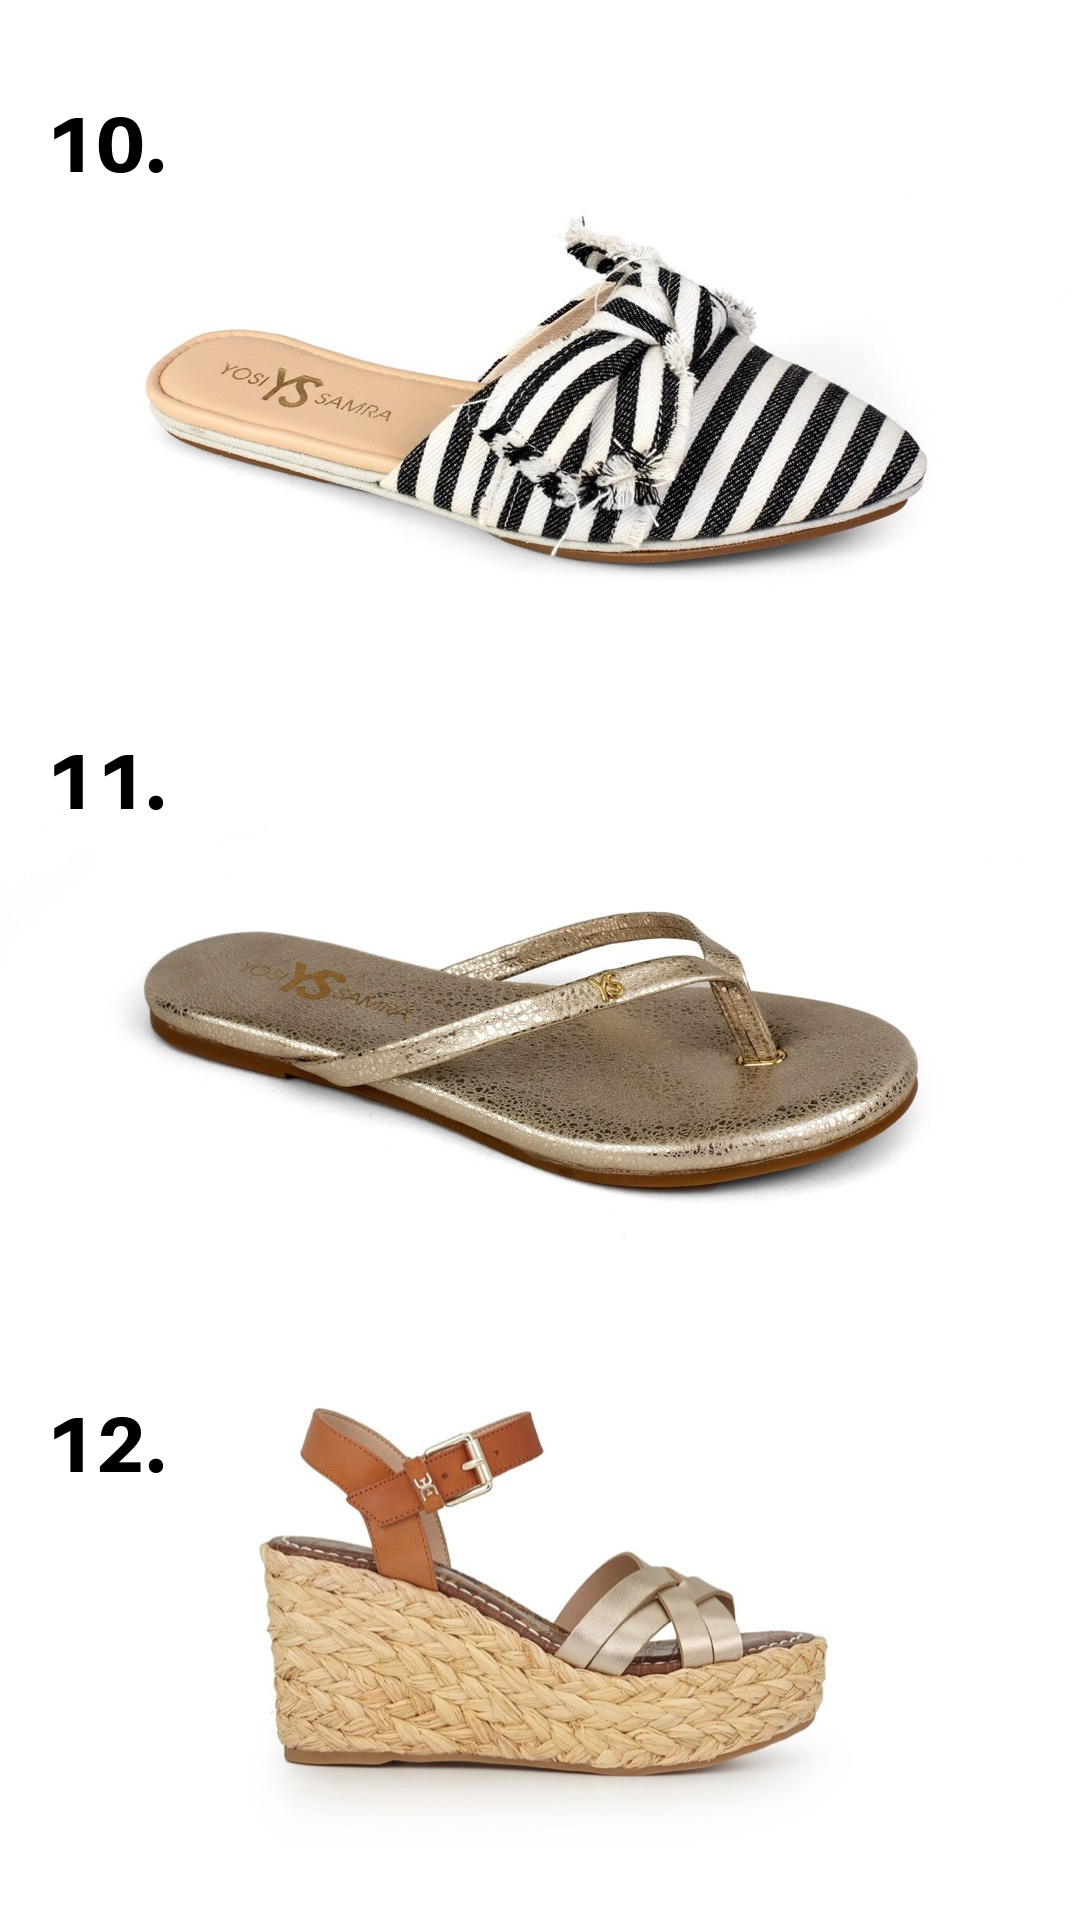 52c9d7687949fd CLICK TO PURCHASE. - 10. The Simply Striped cute and comfy slides that can  take you from shopping